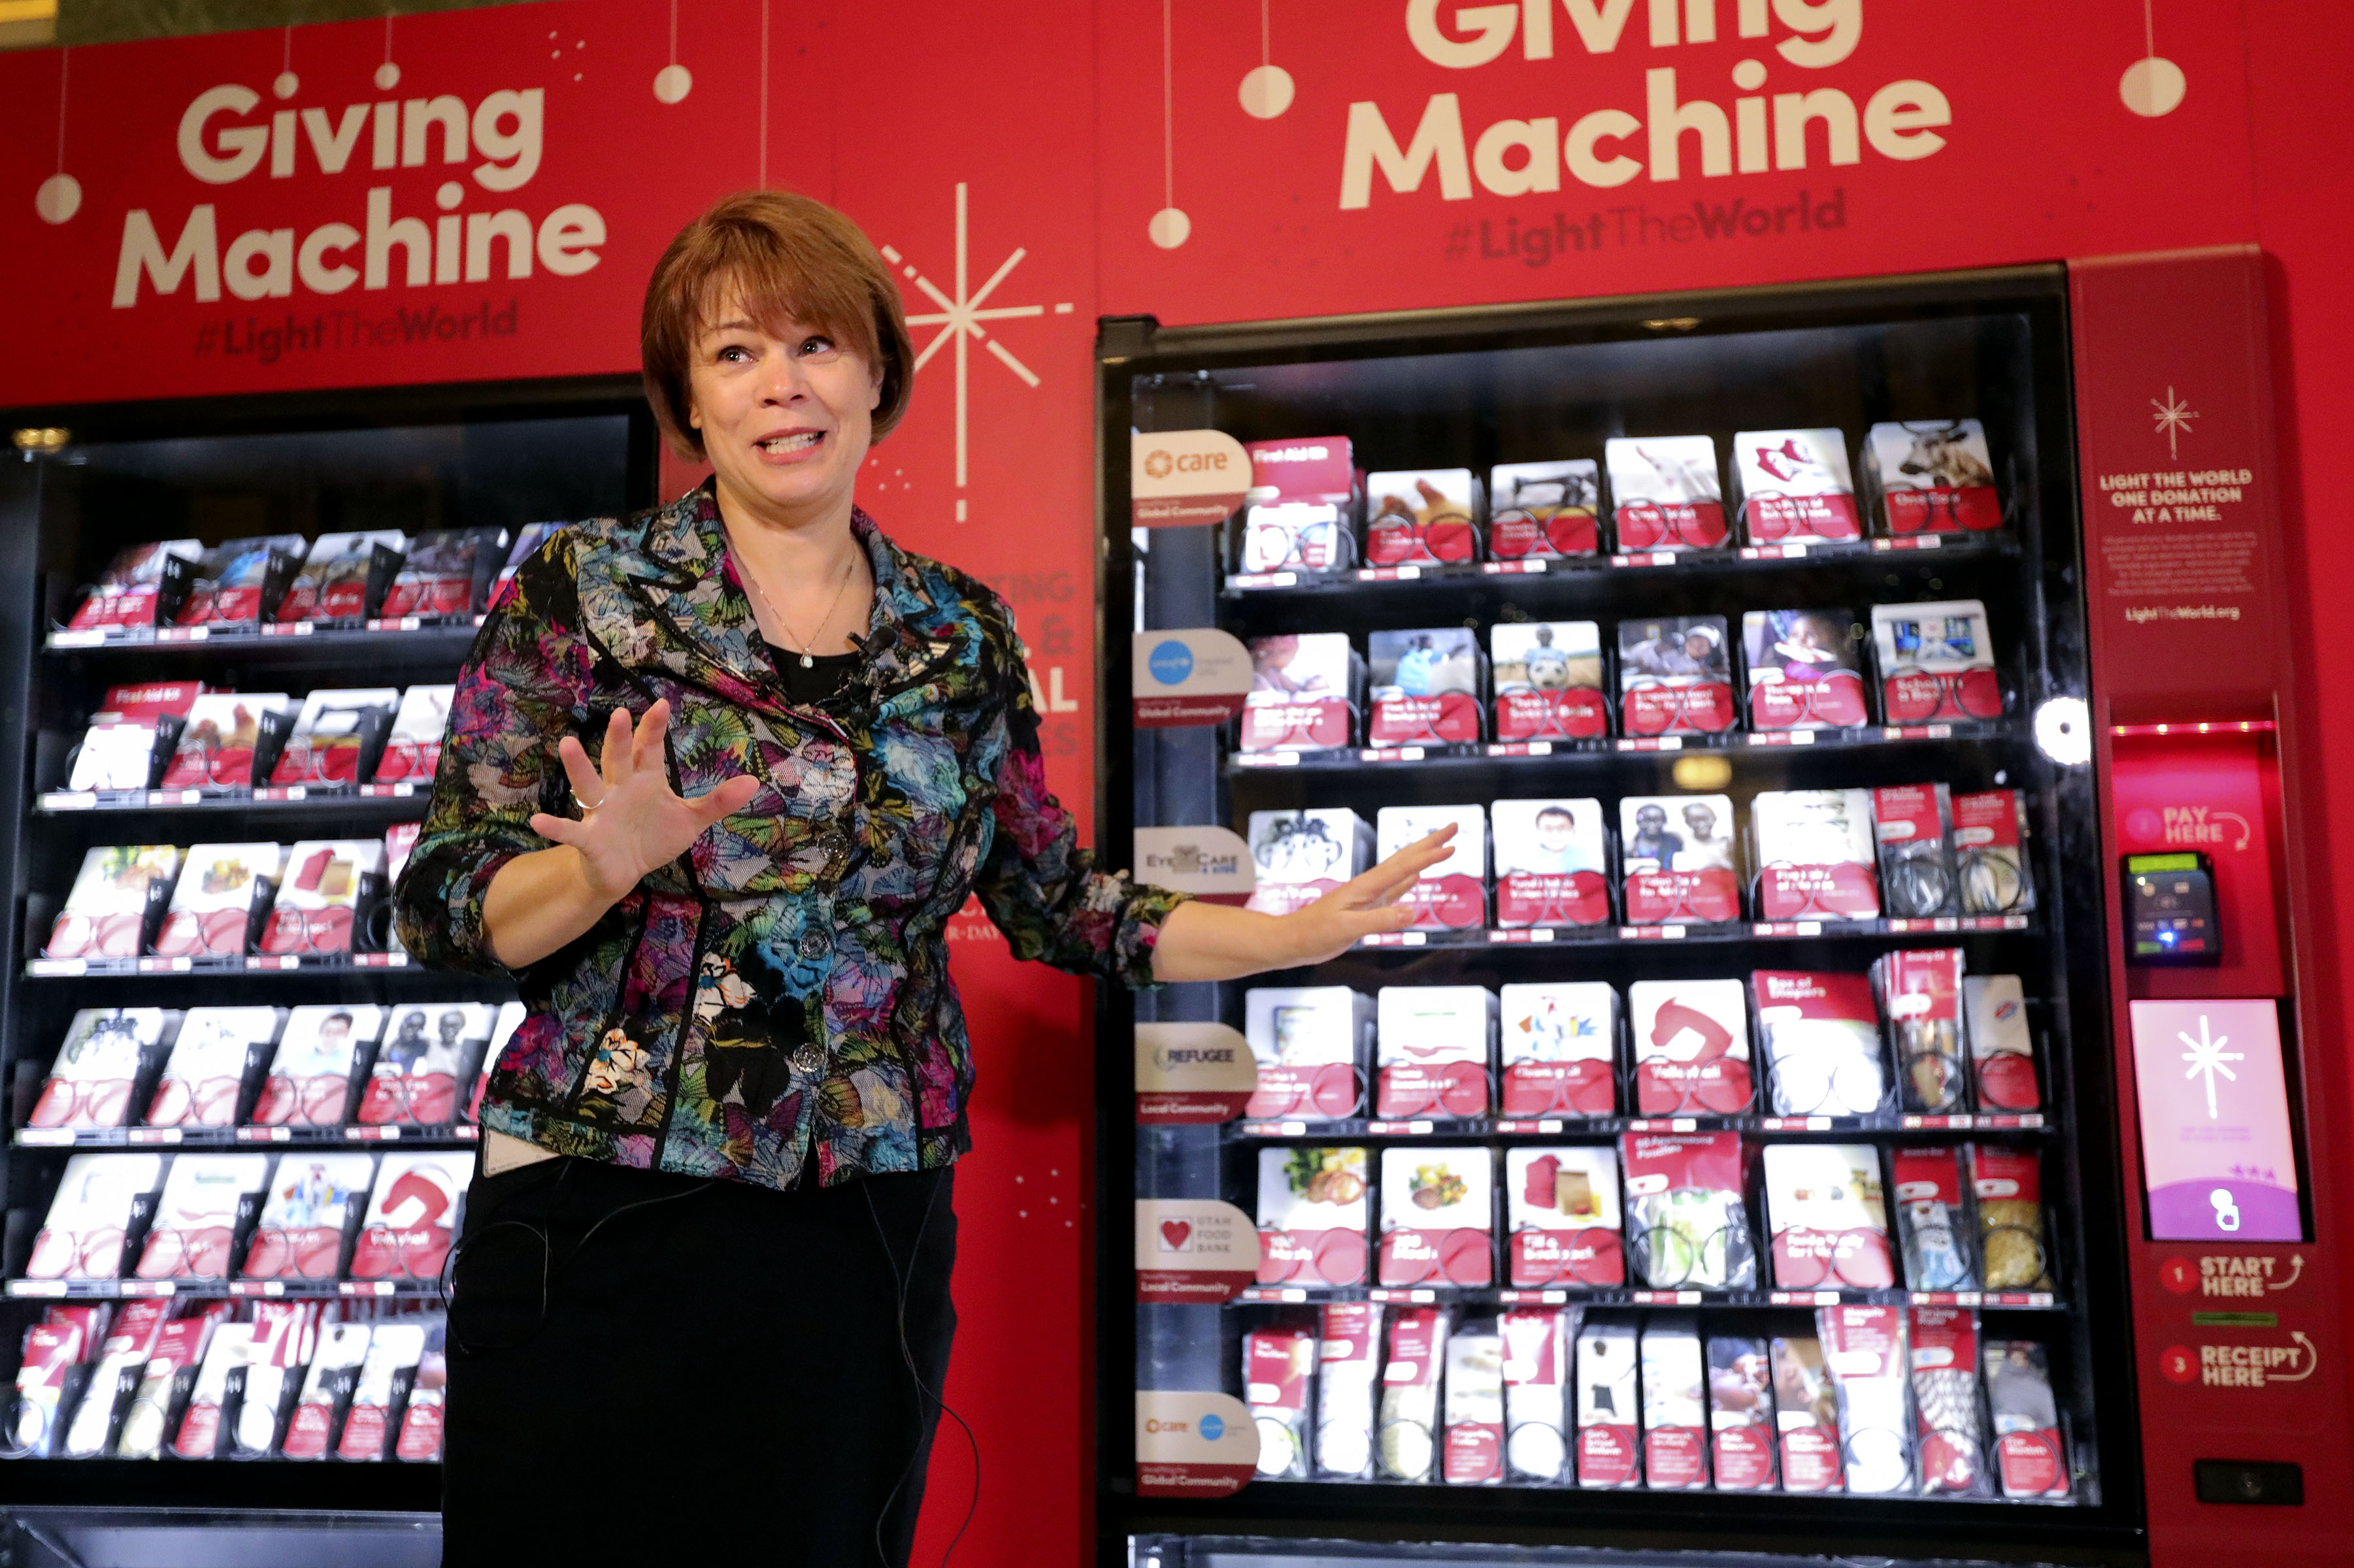 Sharon Eubank, president of LDS Charities and first counselor in the Relief Society general presidency, talks about the Light the World Giving Machine in the lobby of the Joseph Smith Memorial Building in Salt Lake City on Wednesday, Nov. 28, 2018.